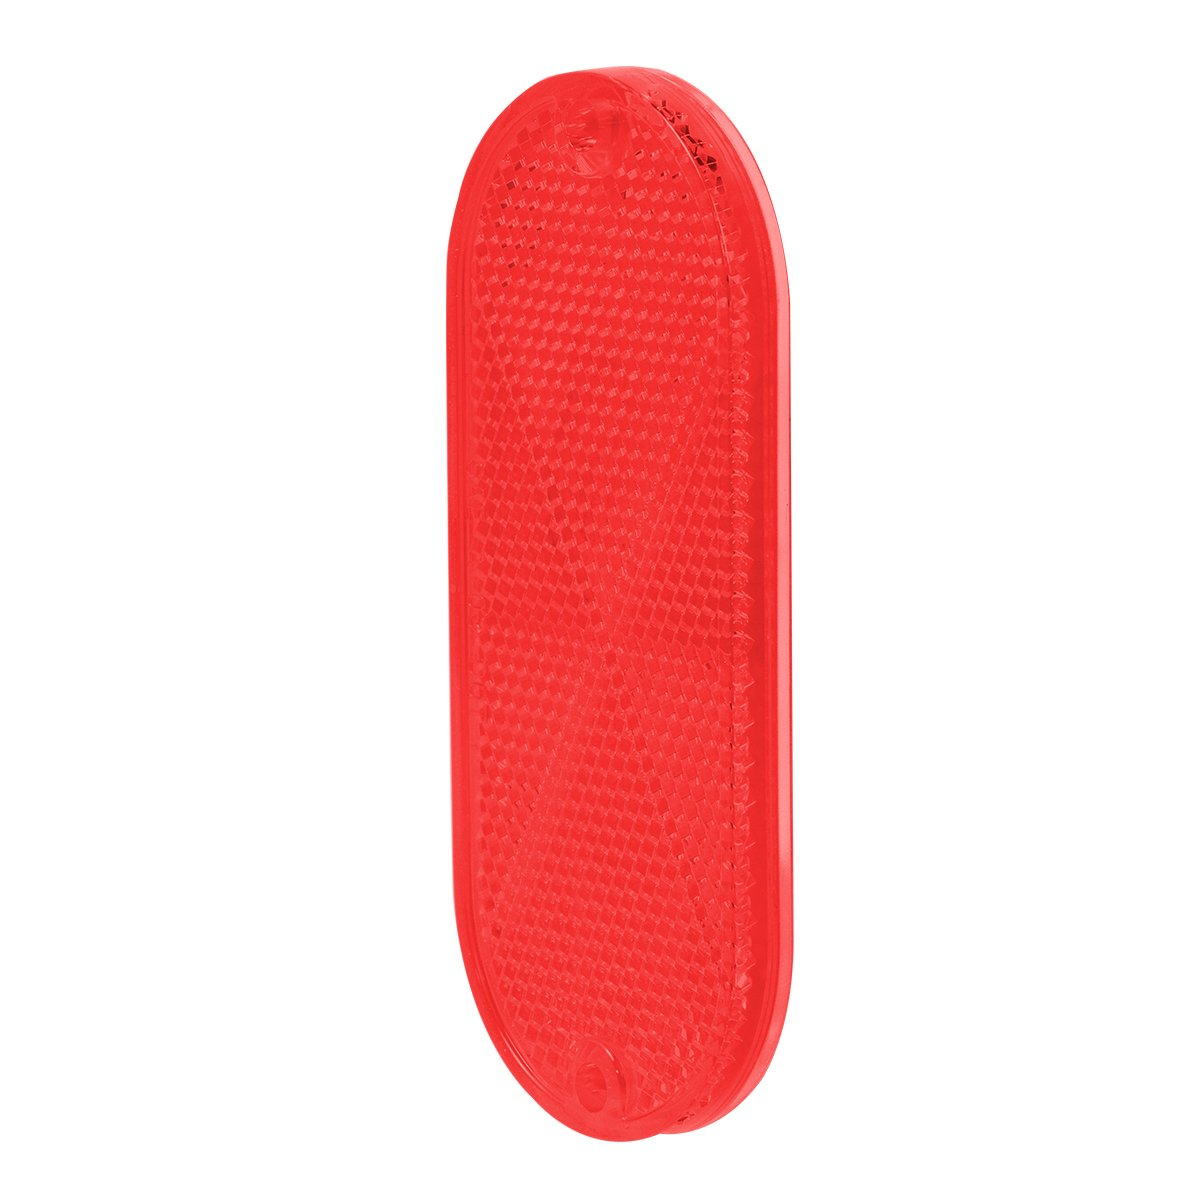 Towing Trailers Grand General 99569 Red Oblong Mountable Reflector for Trucks RVs and Buses 1 Pack